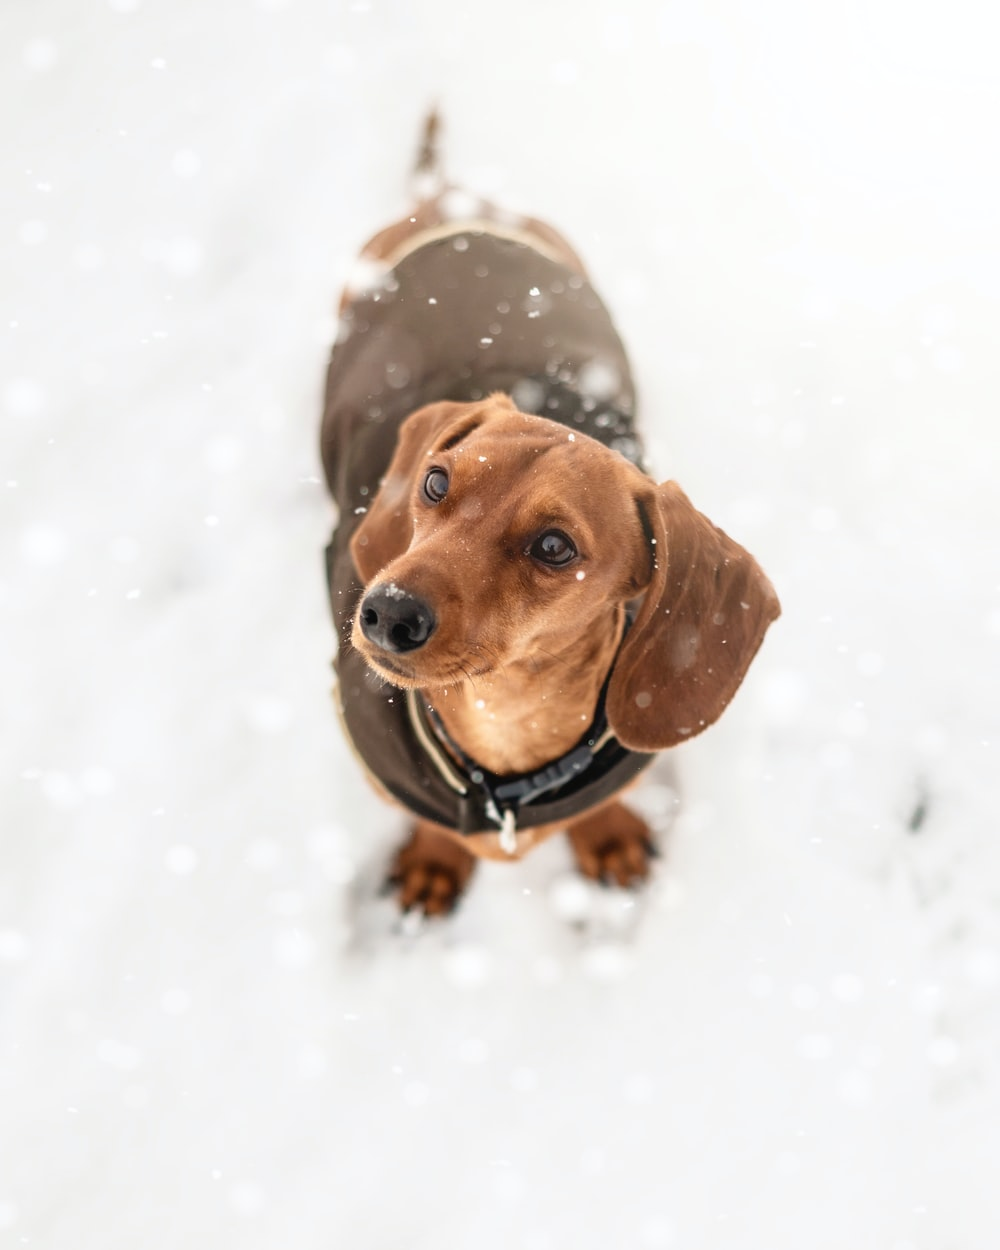 brown dachshund on snow covered ground during daytime